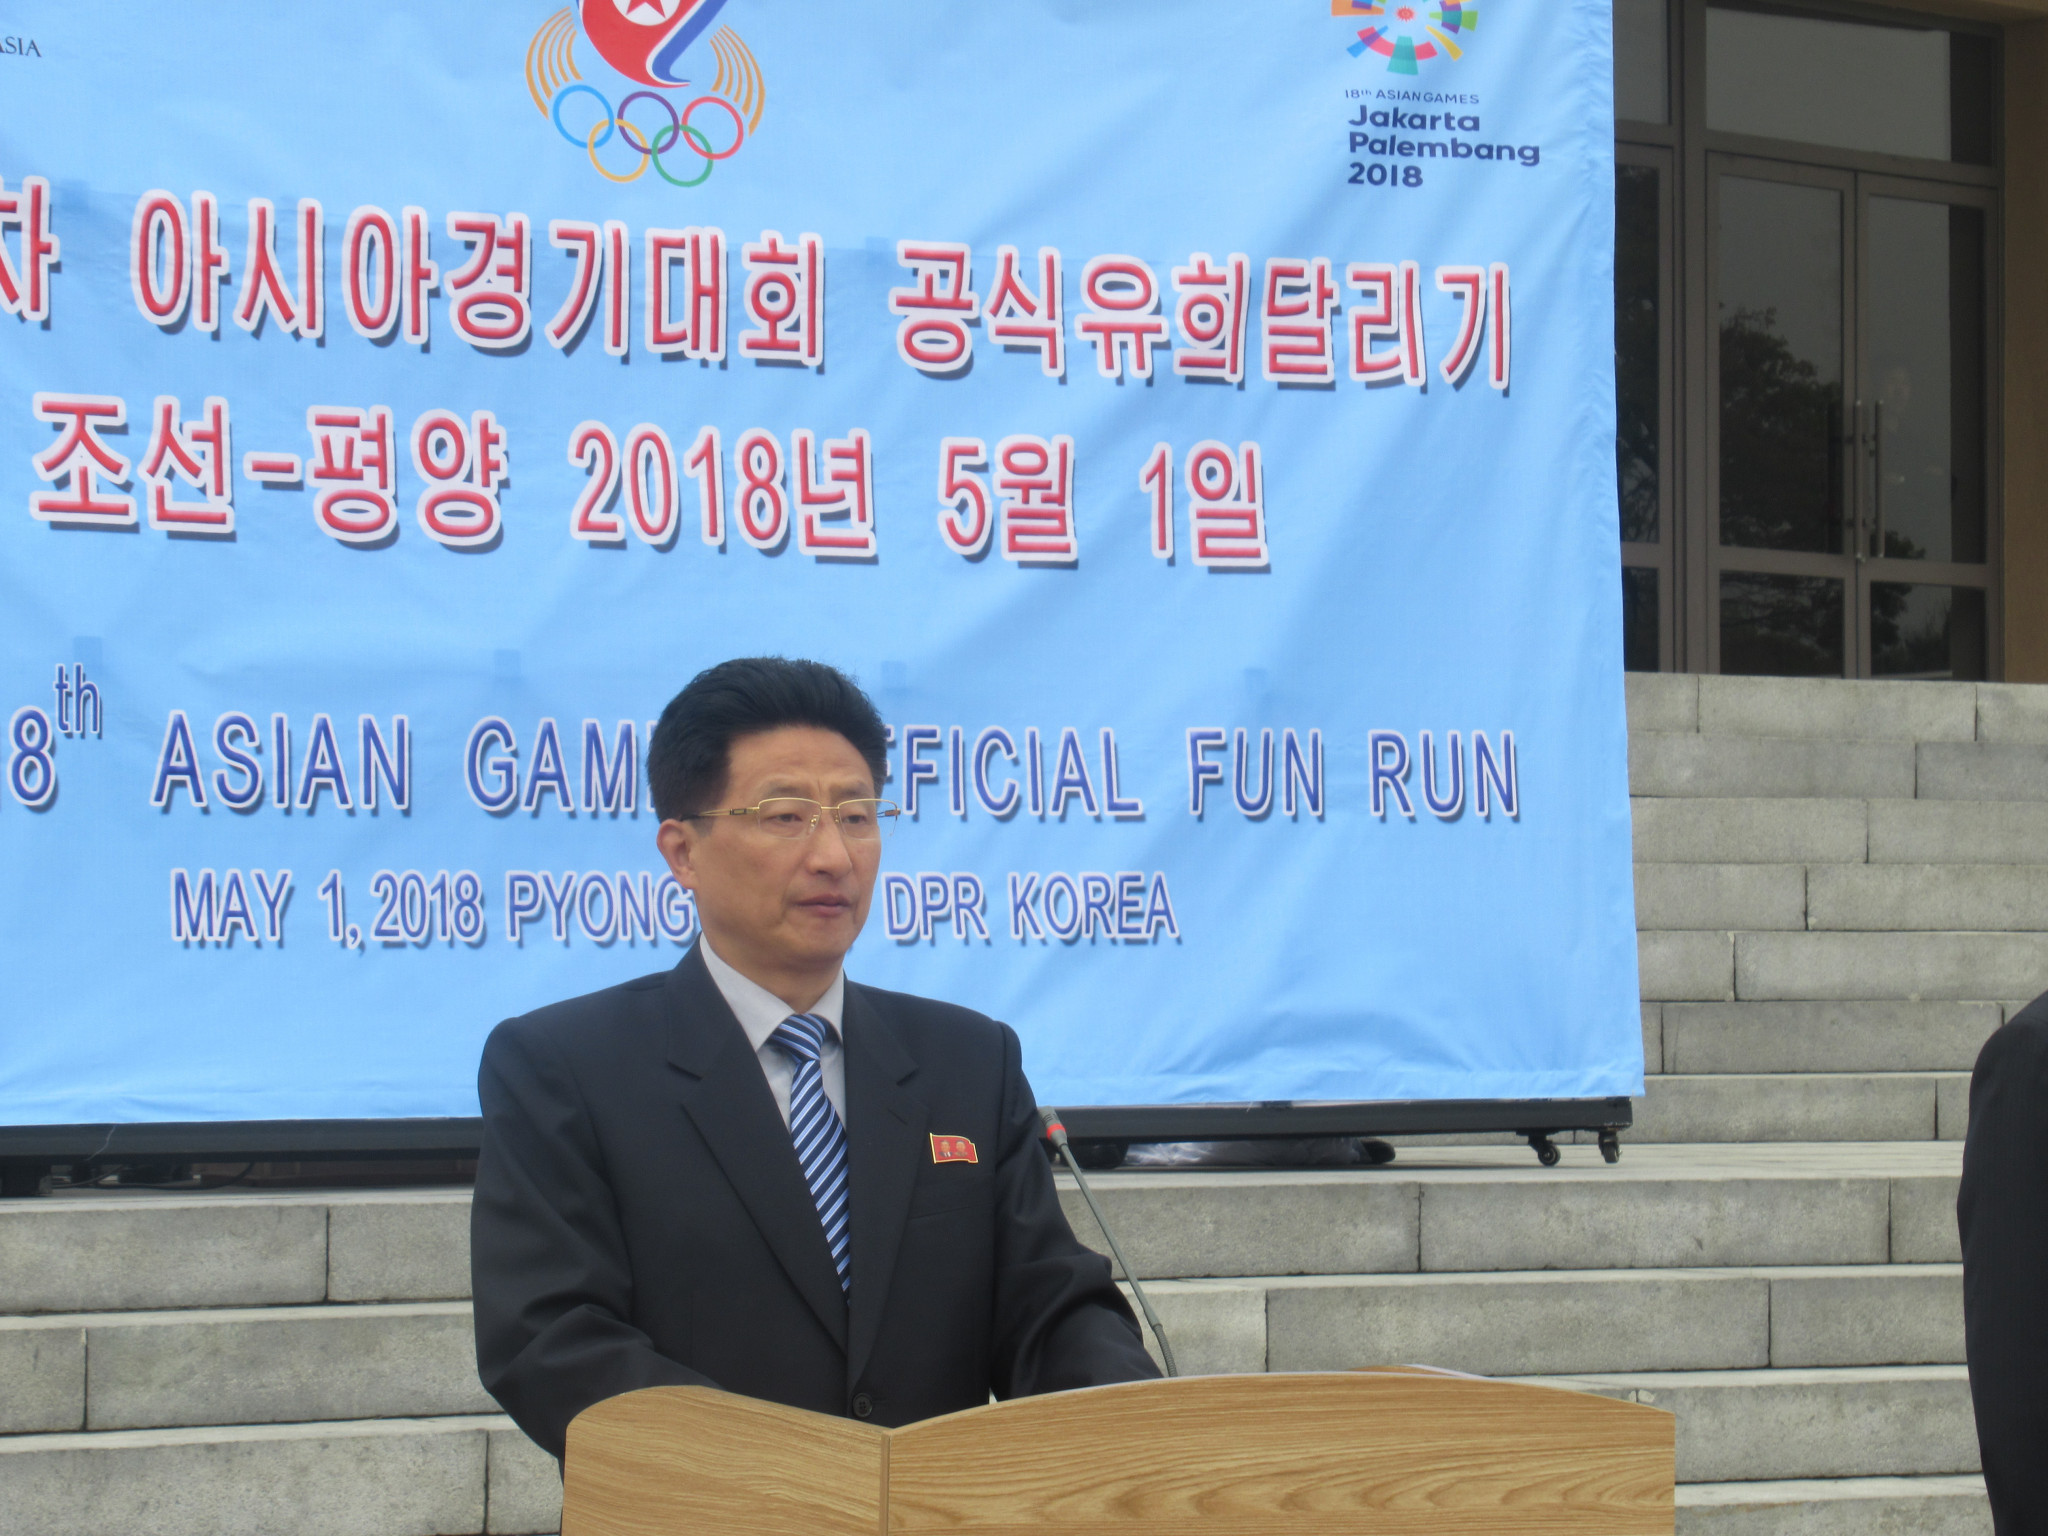 North and South Korea to meet again for discussions on joint teams at 2018 Asian Games